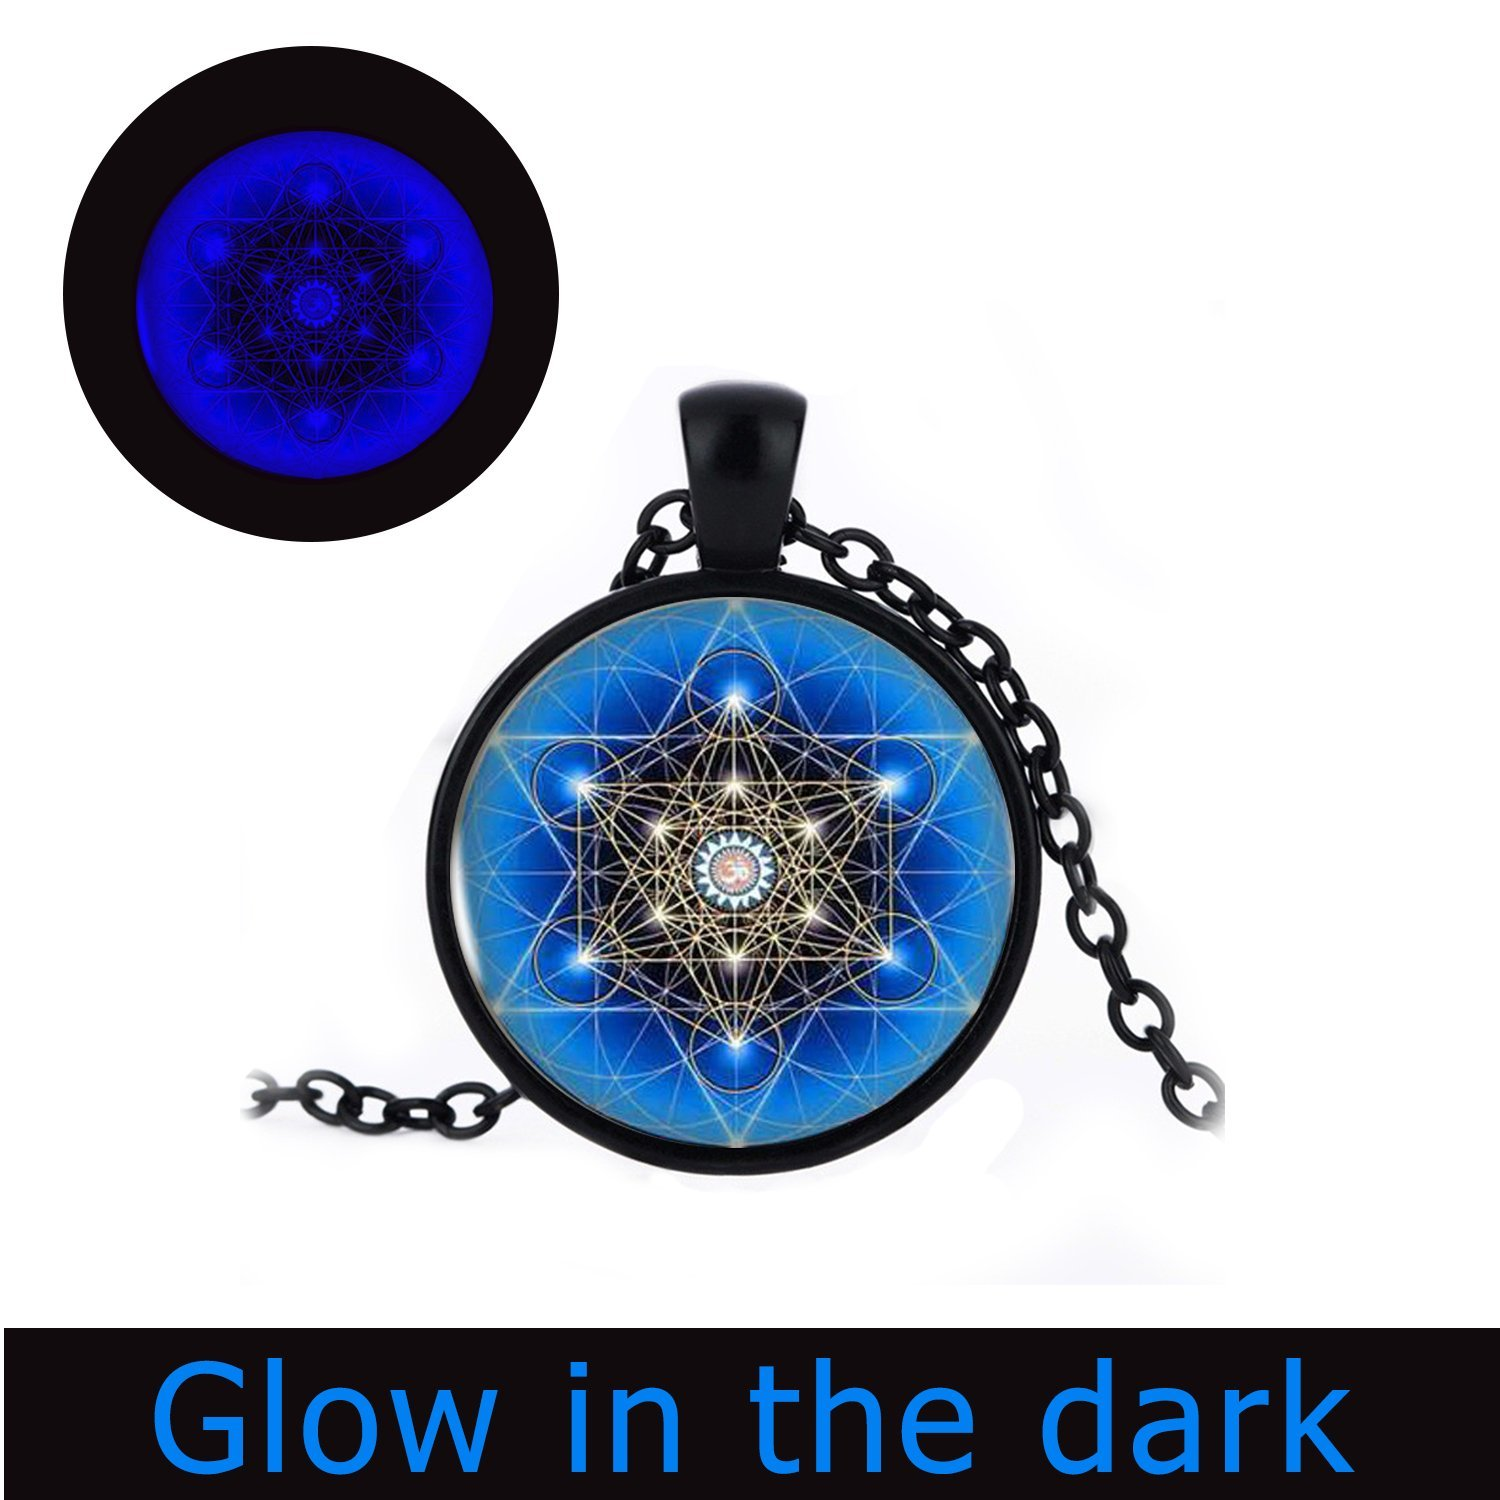 Pentagram Pendant, Glow in the Dark ,Pentagram Glowing Necklace, Pentagram Jewelry, Wiccan Necklace, Wiccan Pendant, Wiccan Jewelry, Astrology Pendant